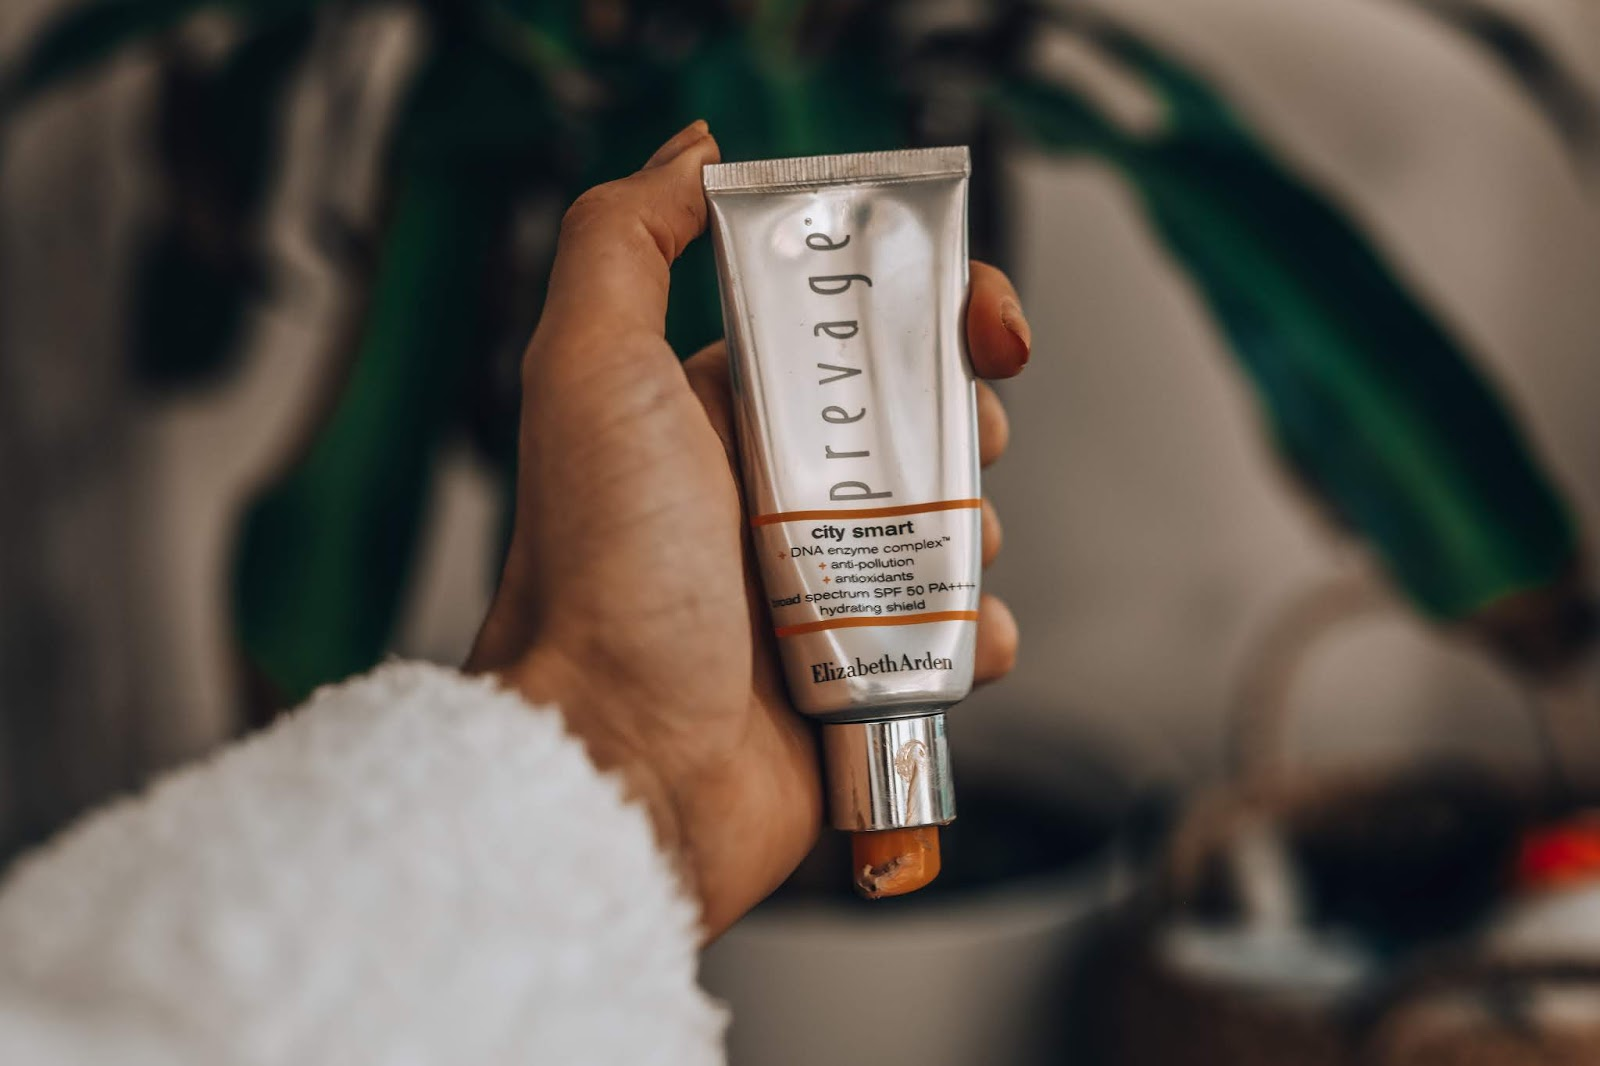 Elizabeth Arden Prevage City Smart SPF 50 Hydrating Shield